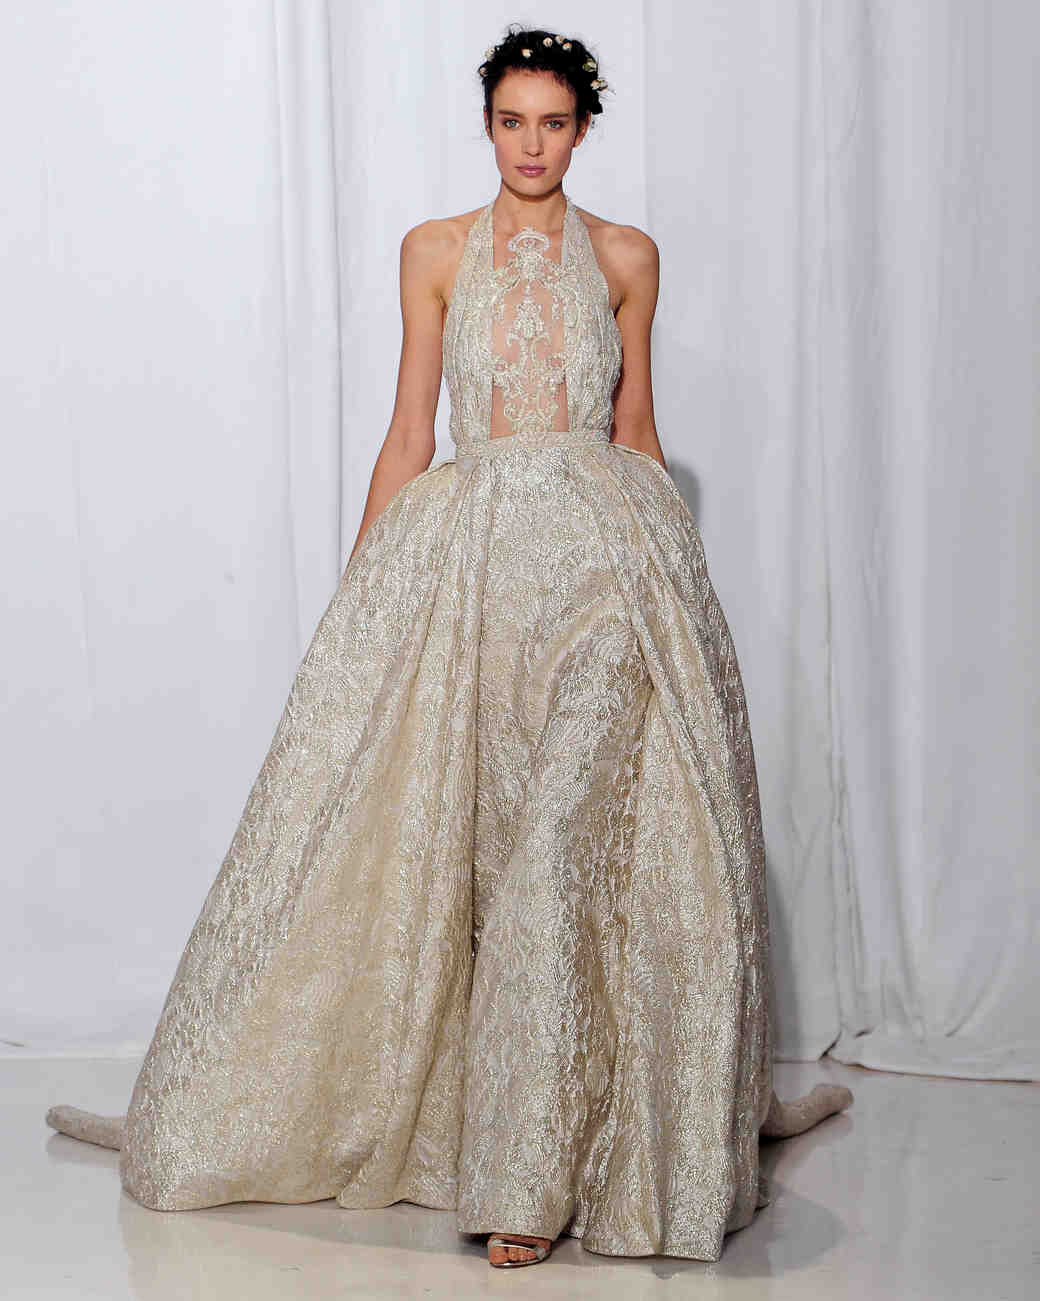 firstview 17 of 28 reem acra photography firstview 18 of 28 reem acra